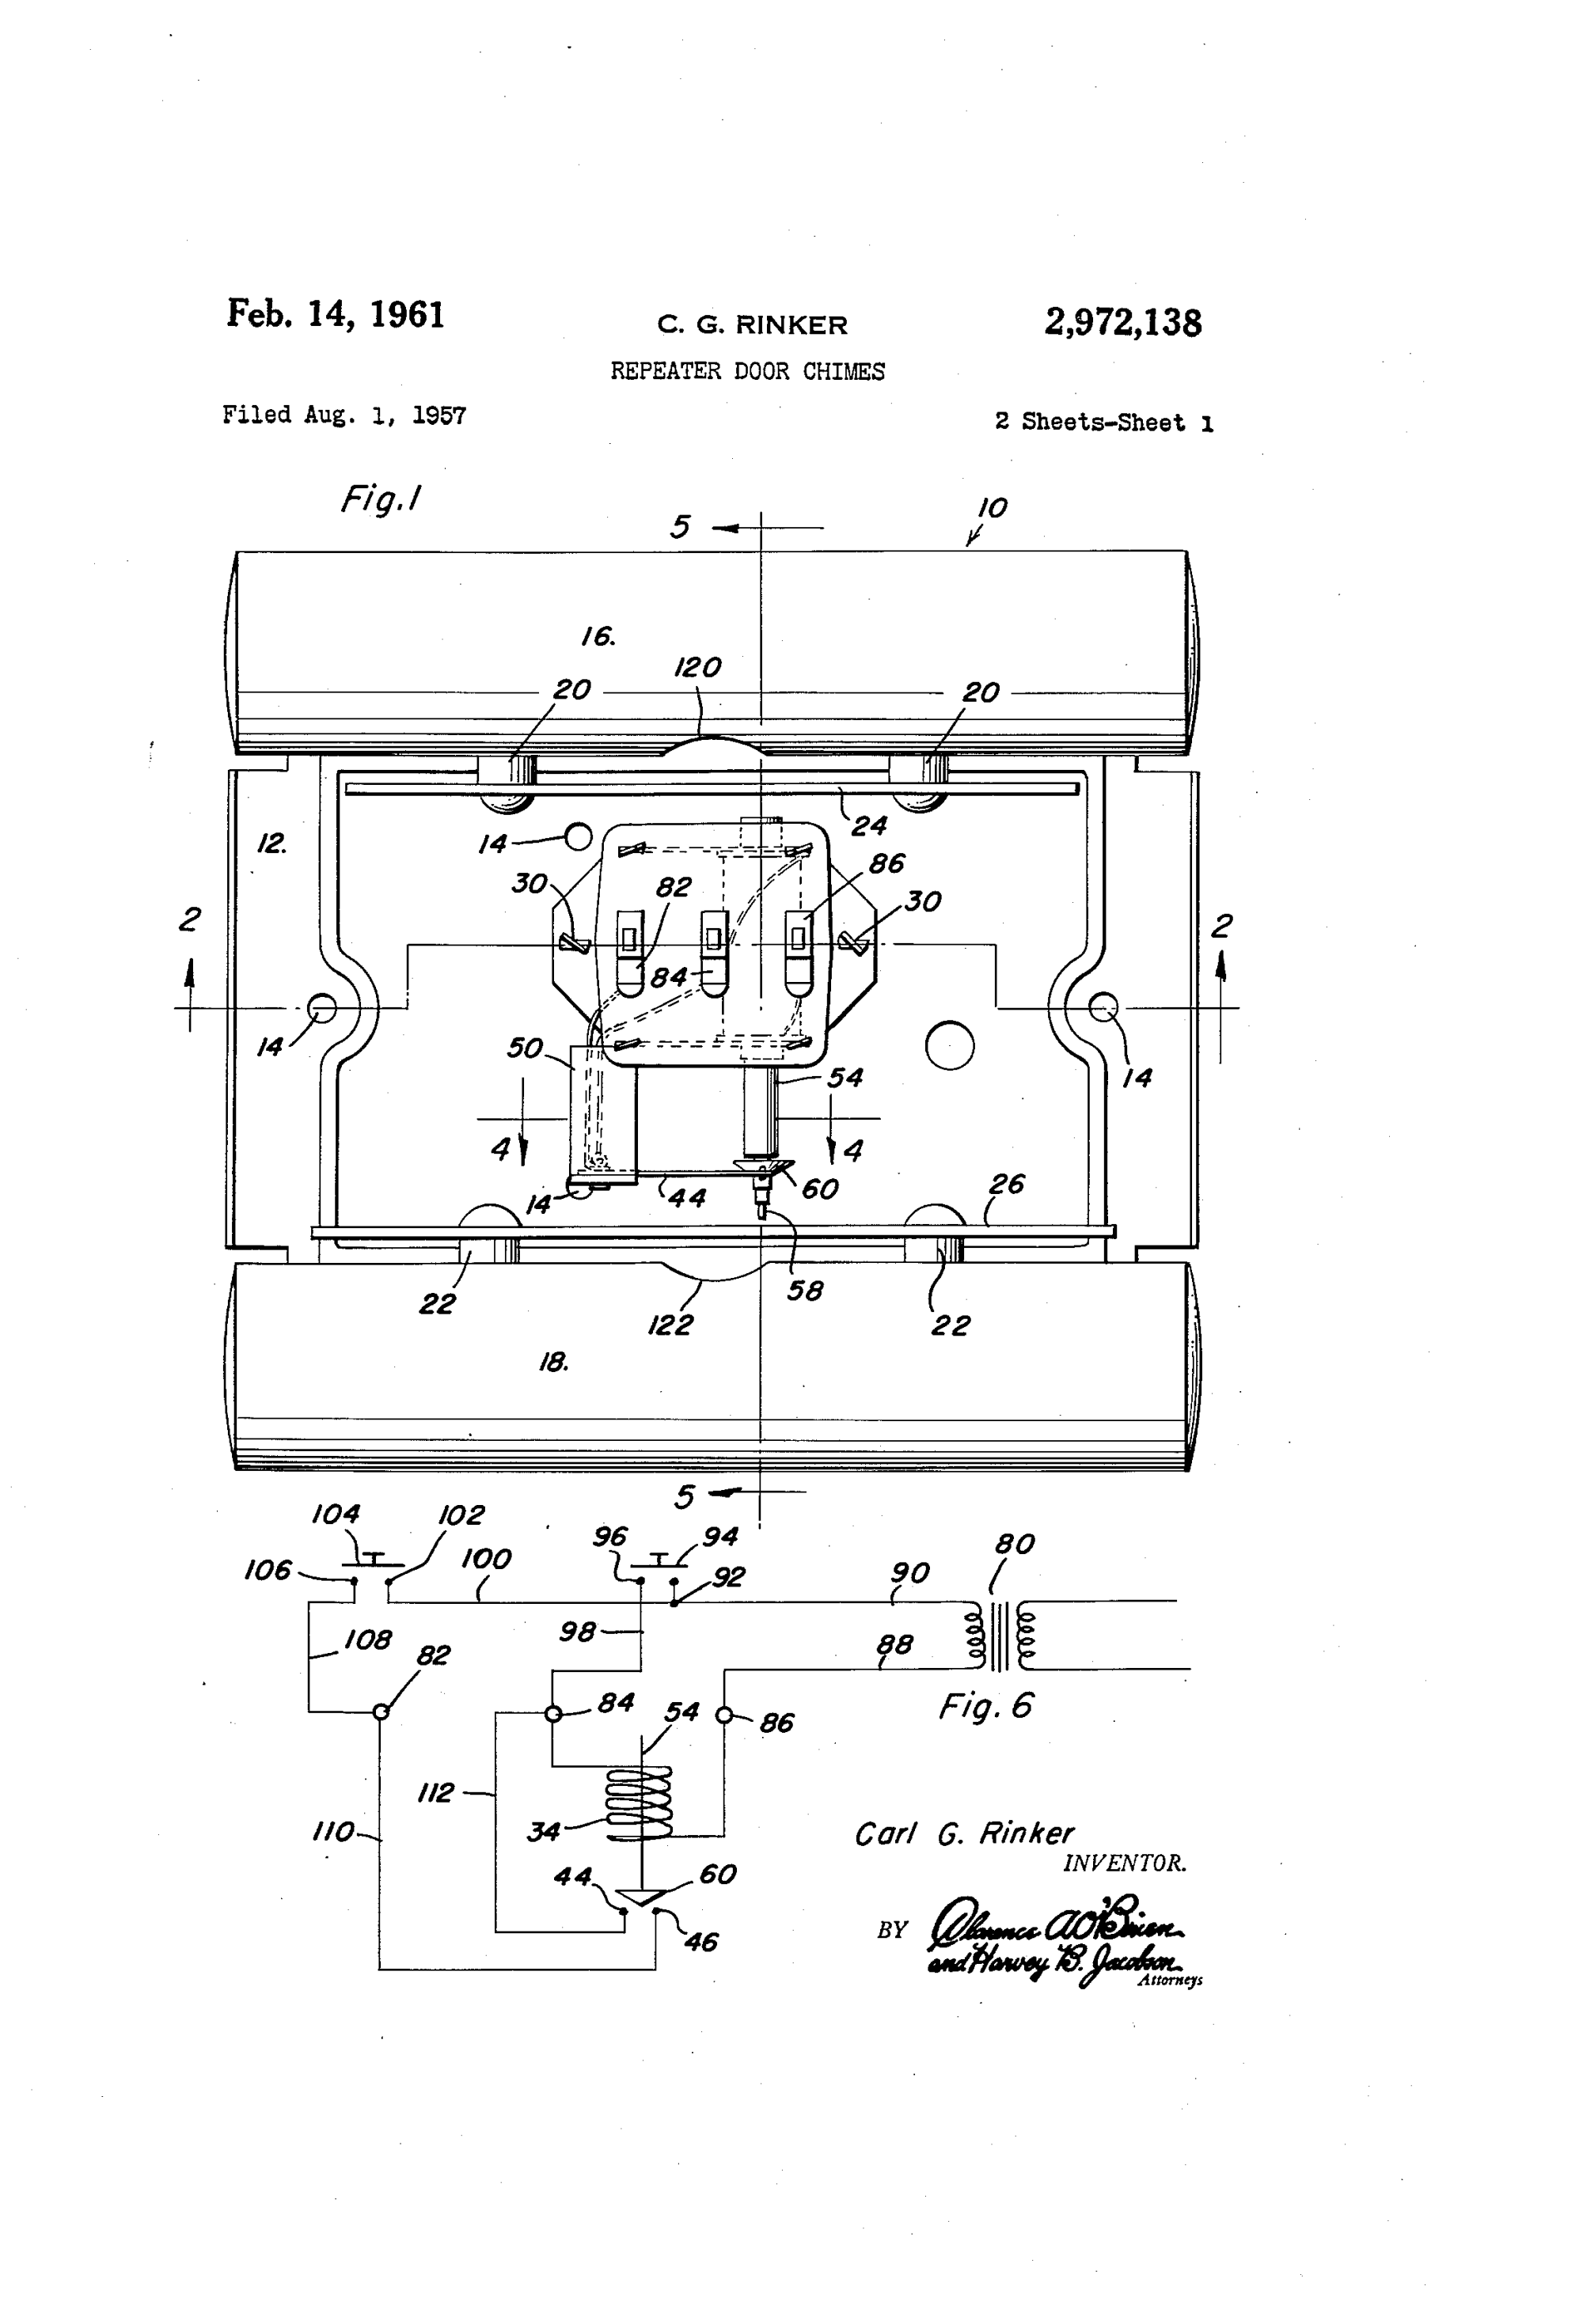 hight resolution of front and rear doorbell wiring diagrams patent drawing